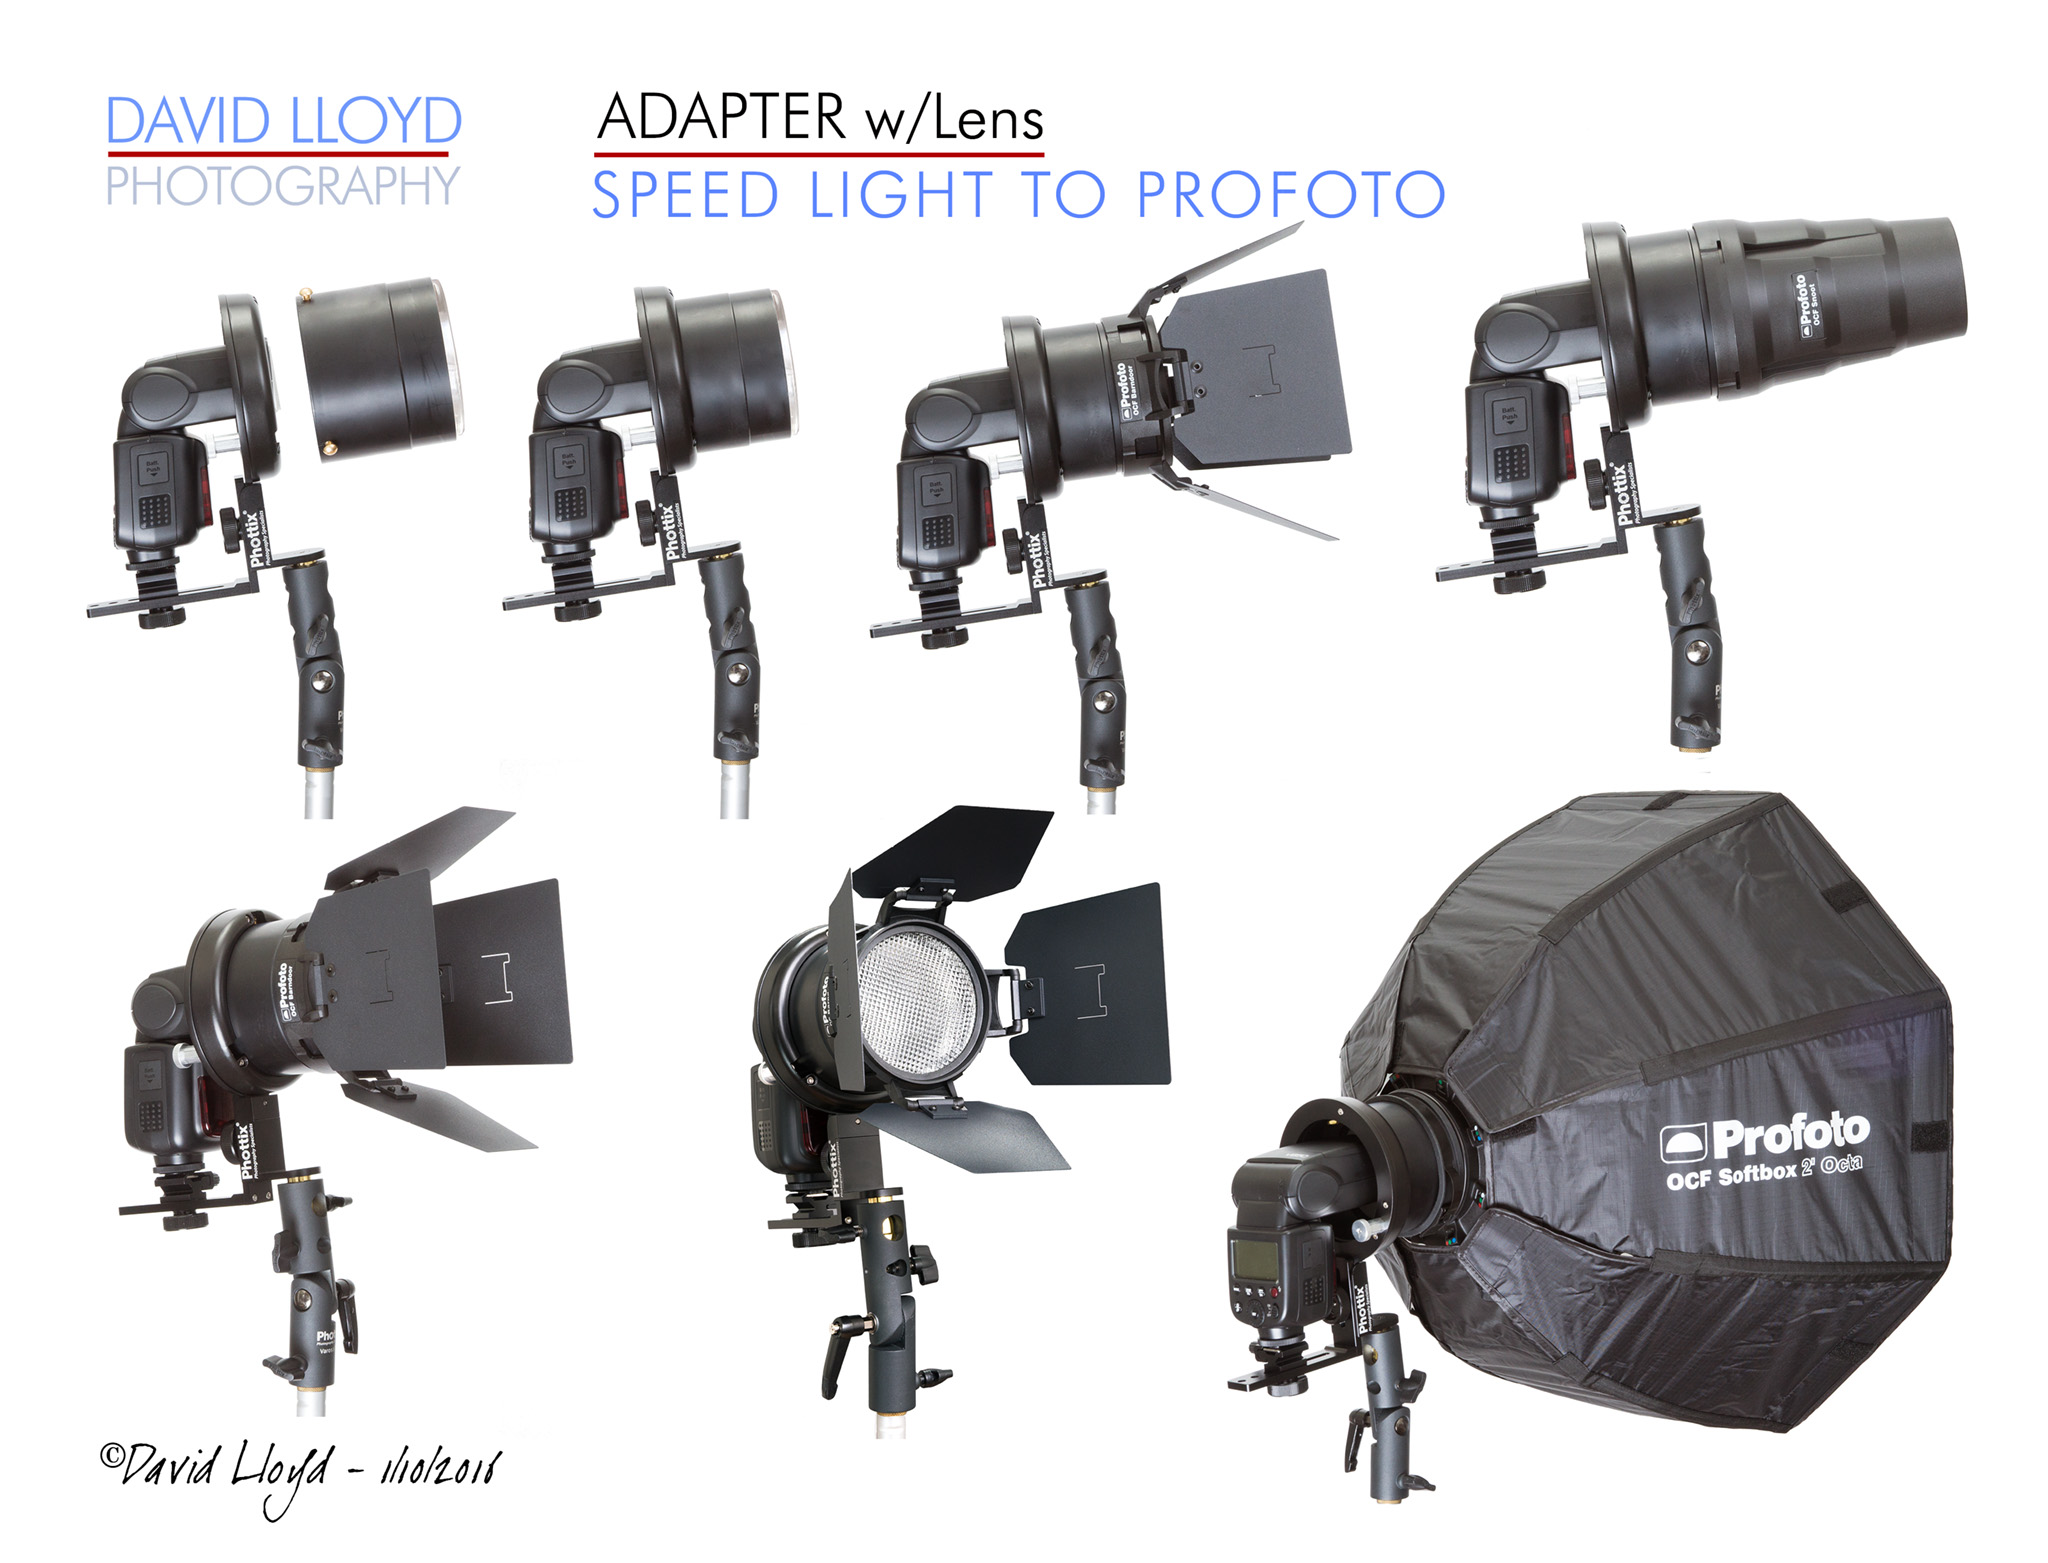 The above photo artwork shows the direct interface with the Profoto OCF Light Modifiers.